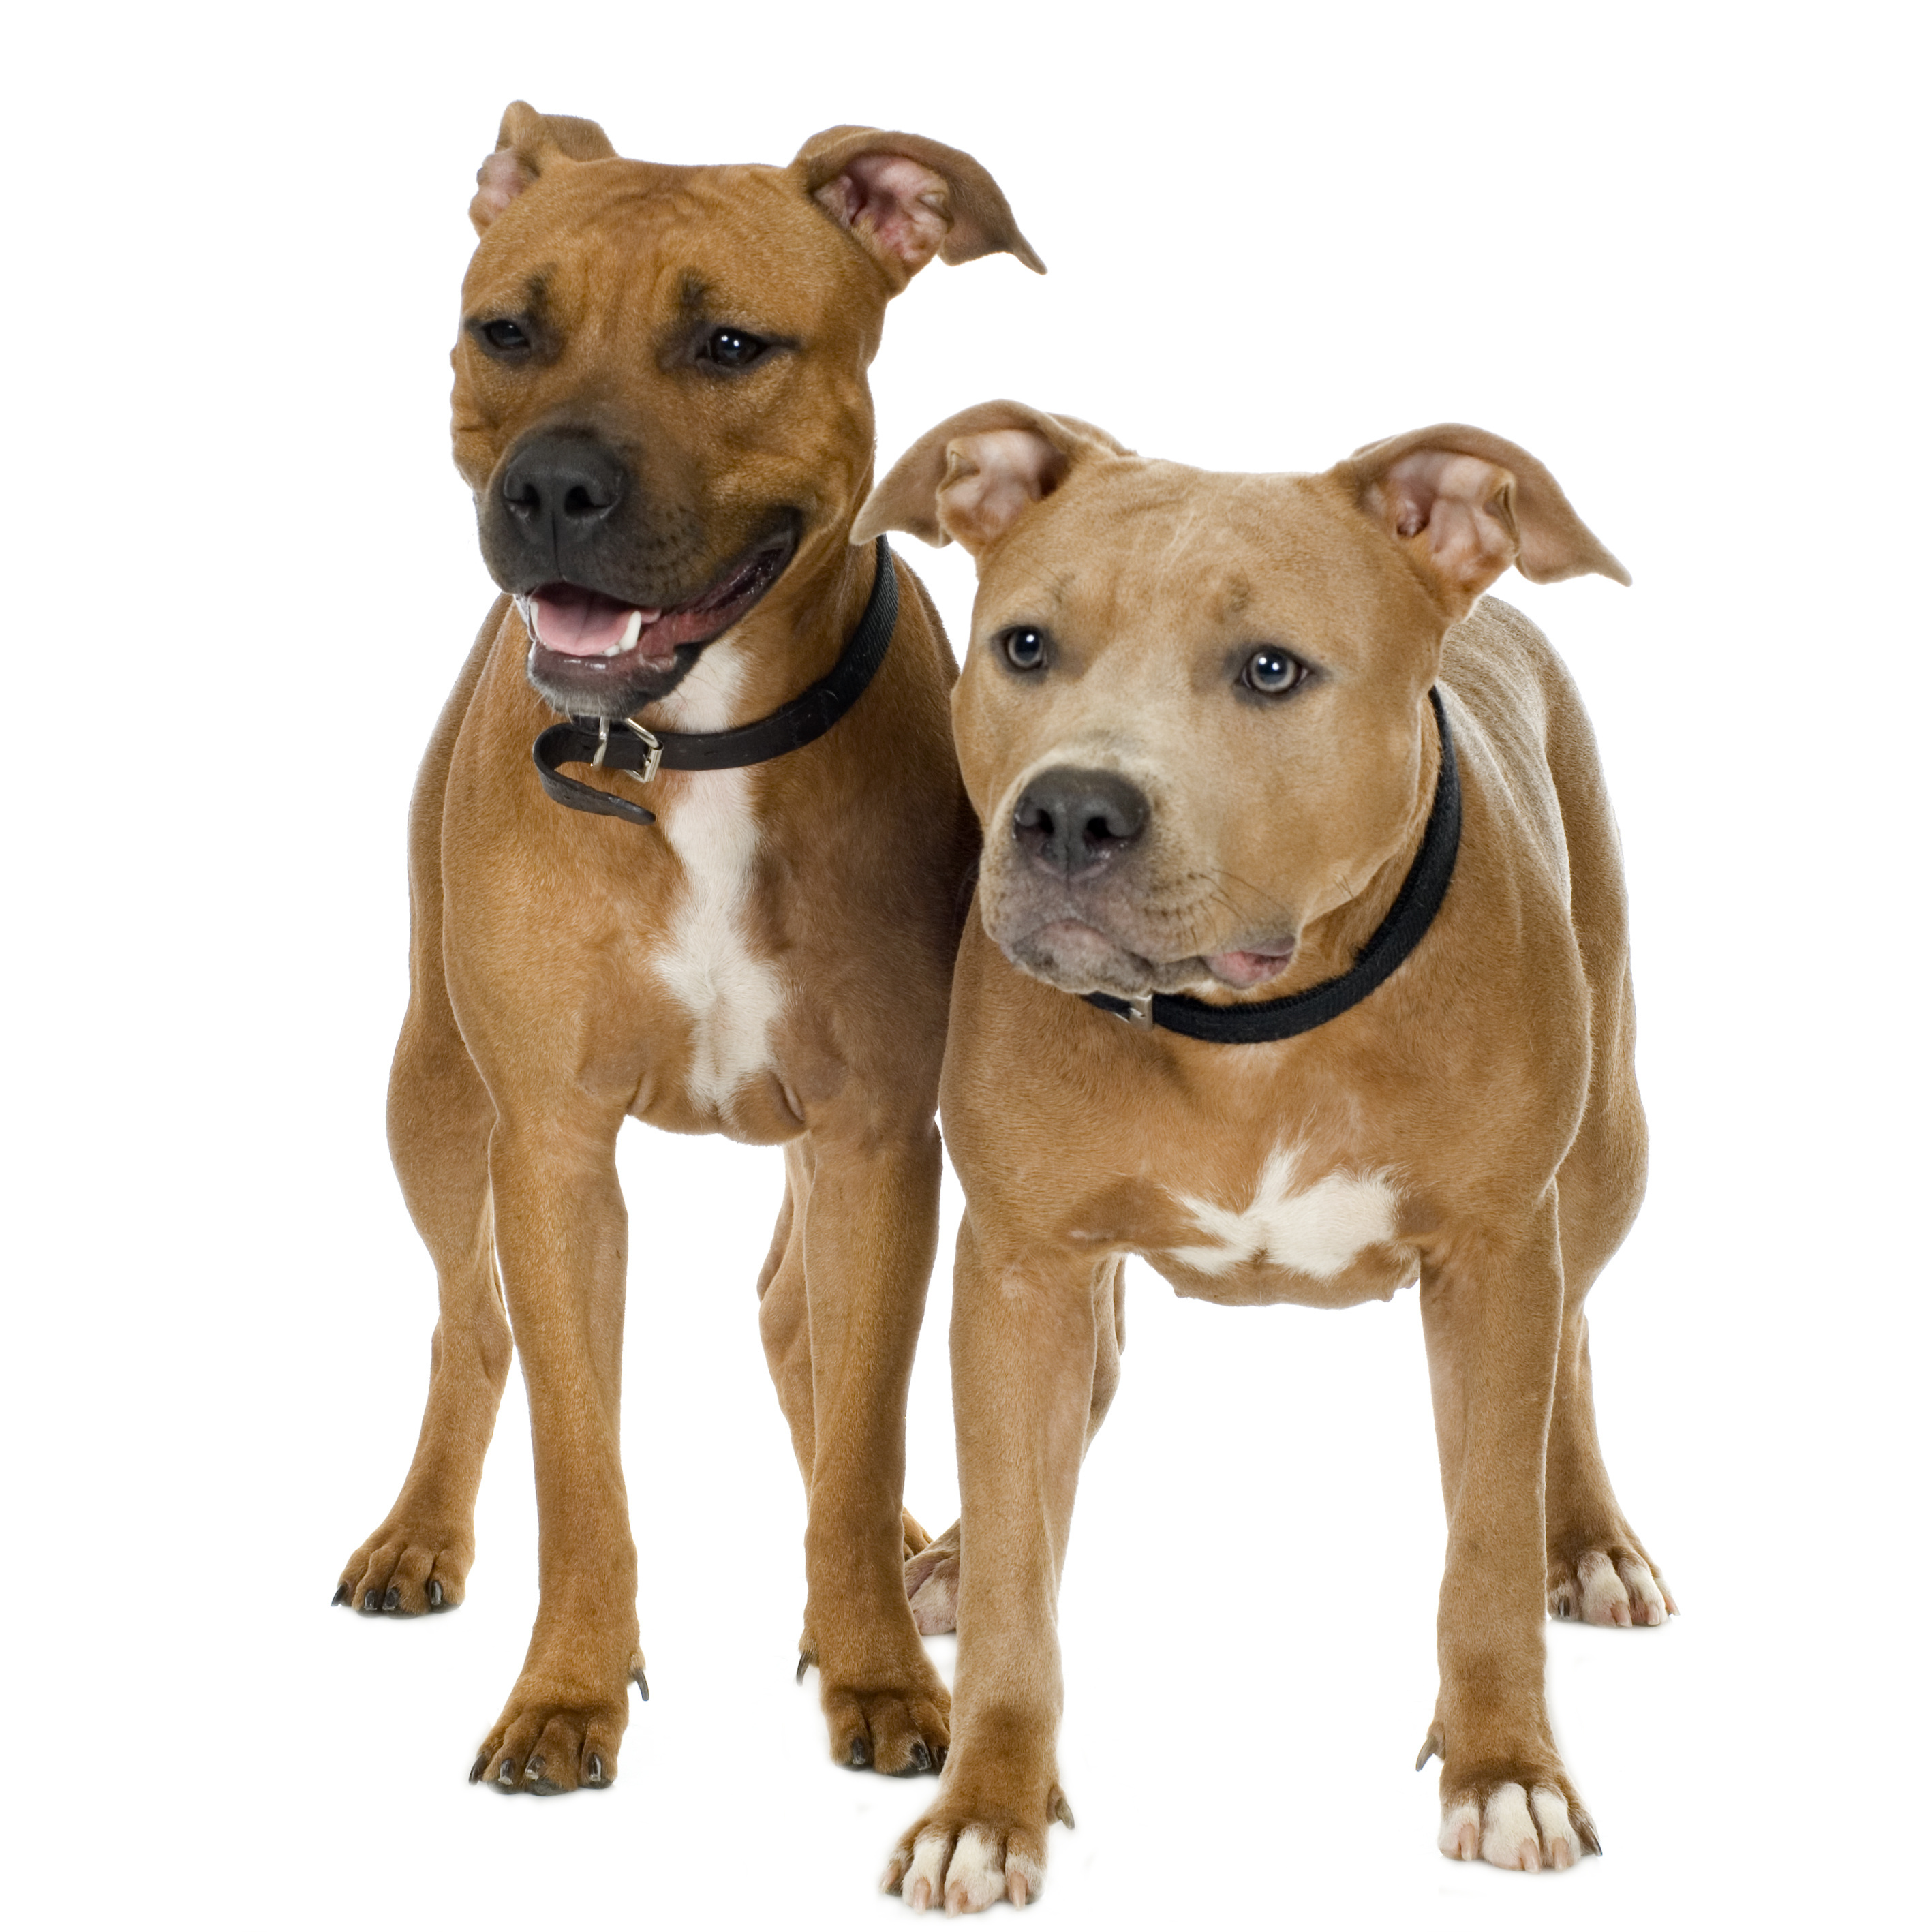 Two American Staffordshire Terriers standing in front of a white background